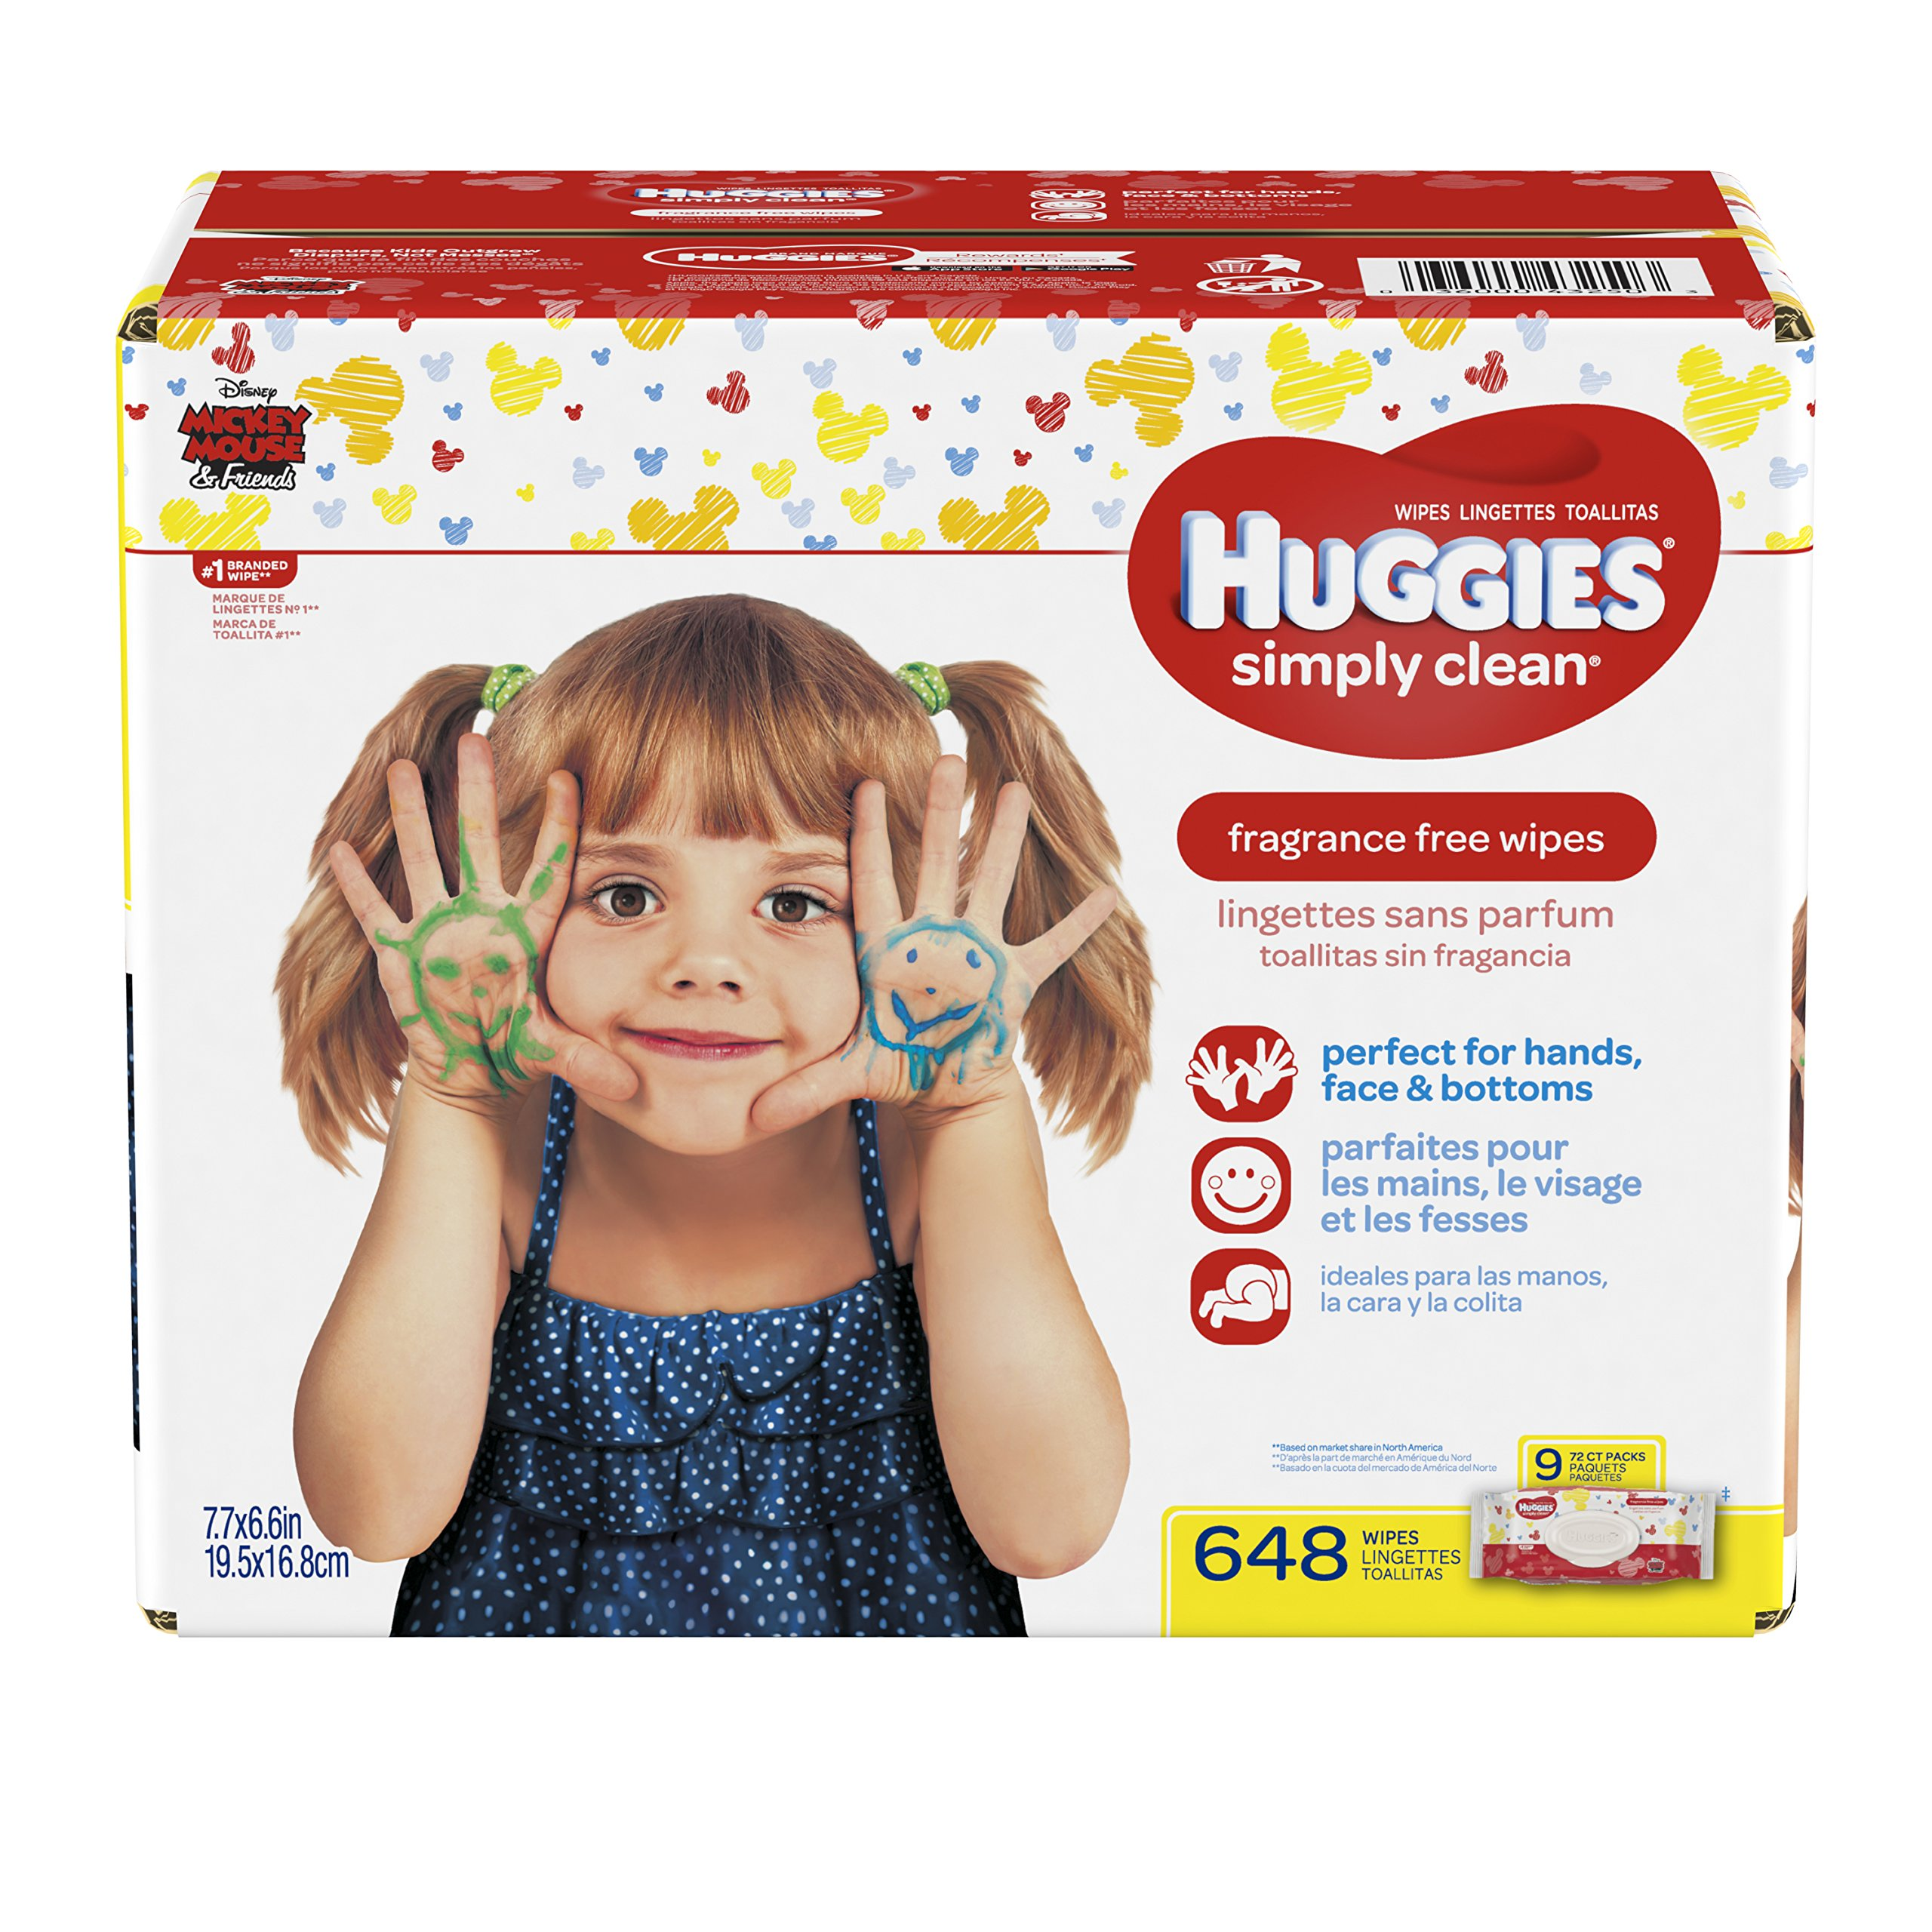 HUGGIES Simply Clean Fragrance Free Baby Wipes, Pack of 9 Soft Packs (72 Wipes per Pack, 648 Count Total), Alcohol and Paraben Free